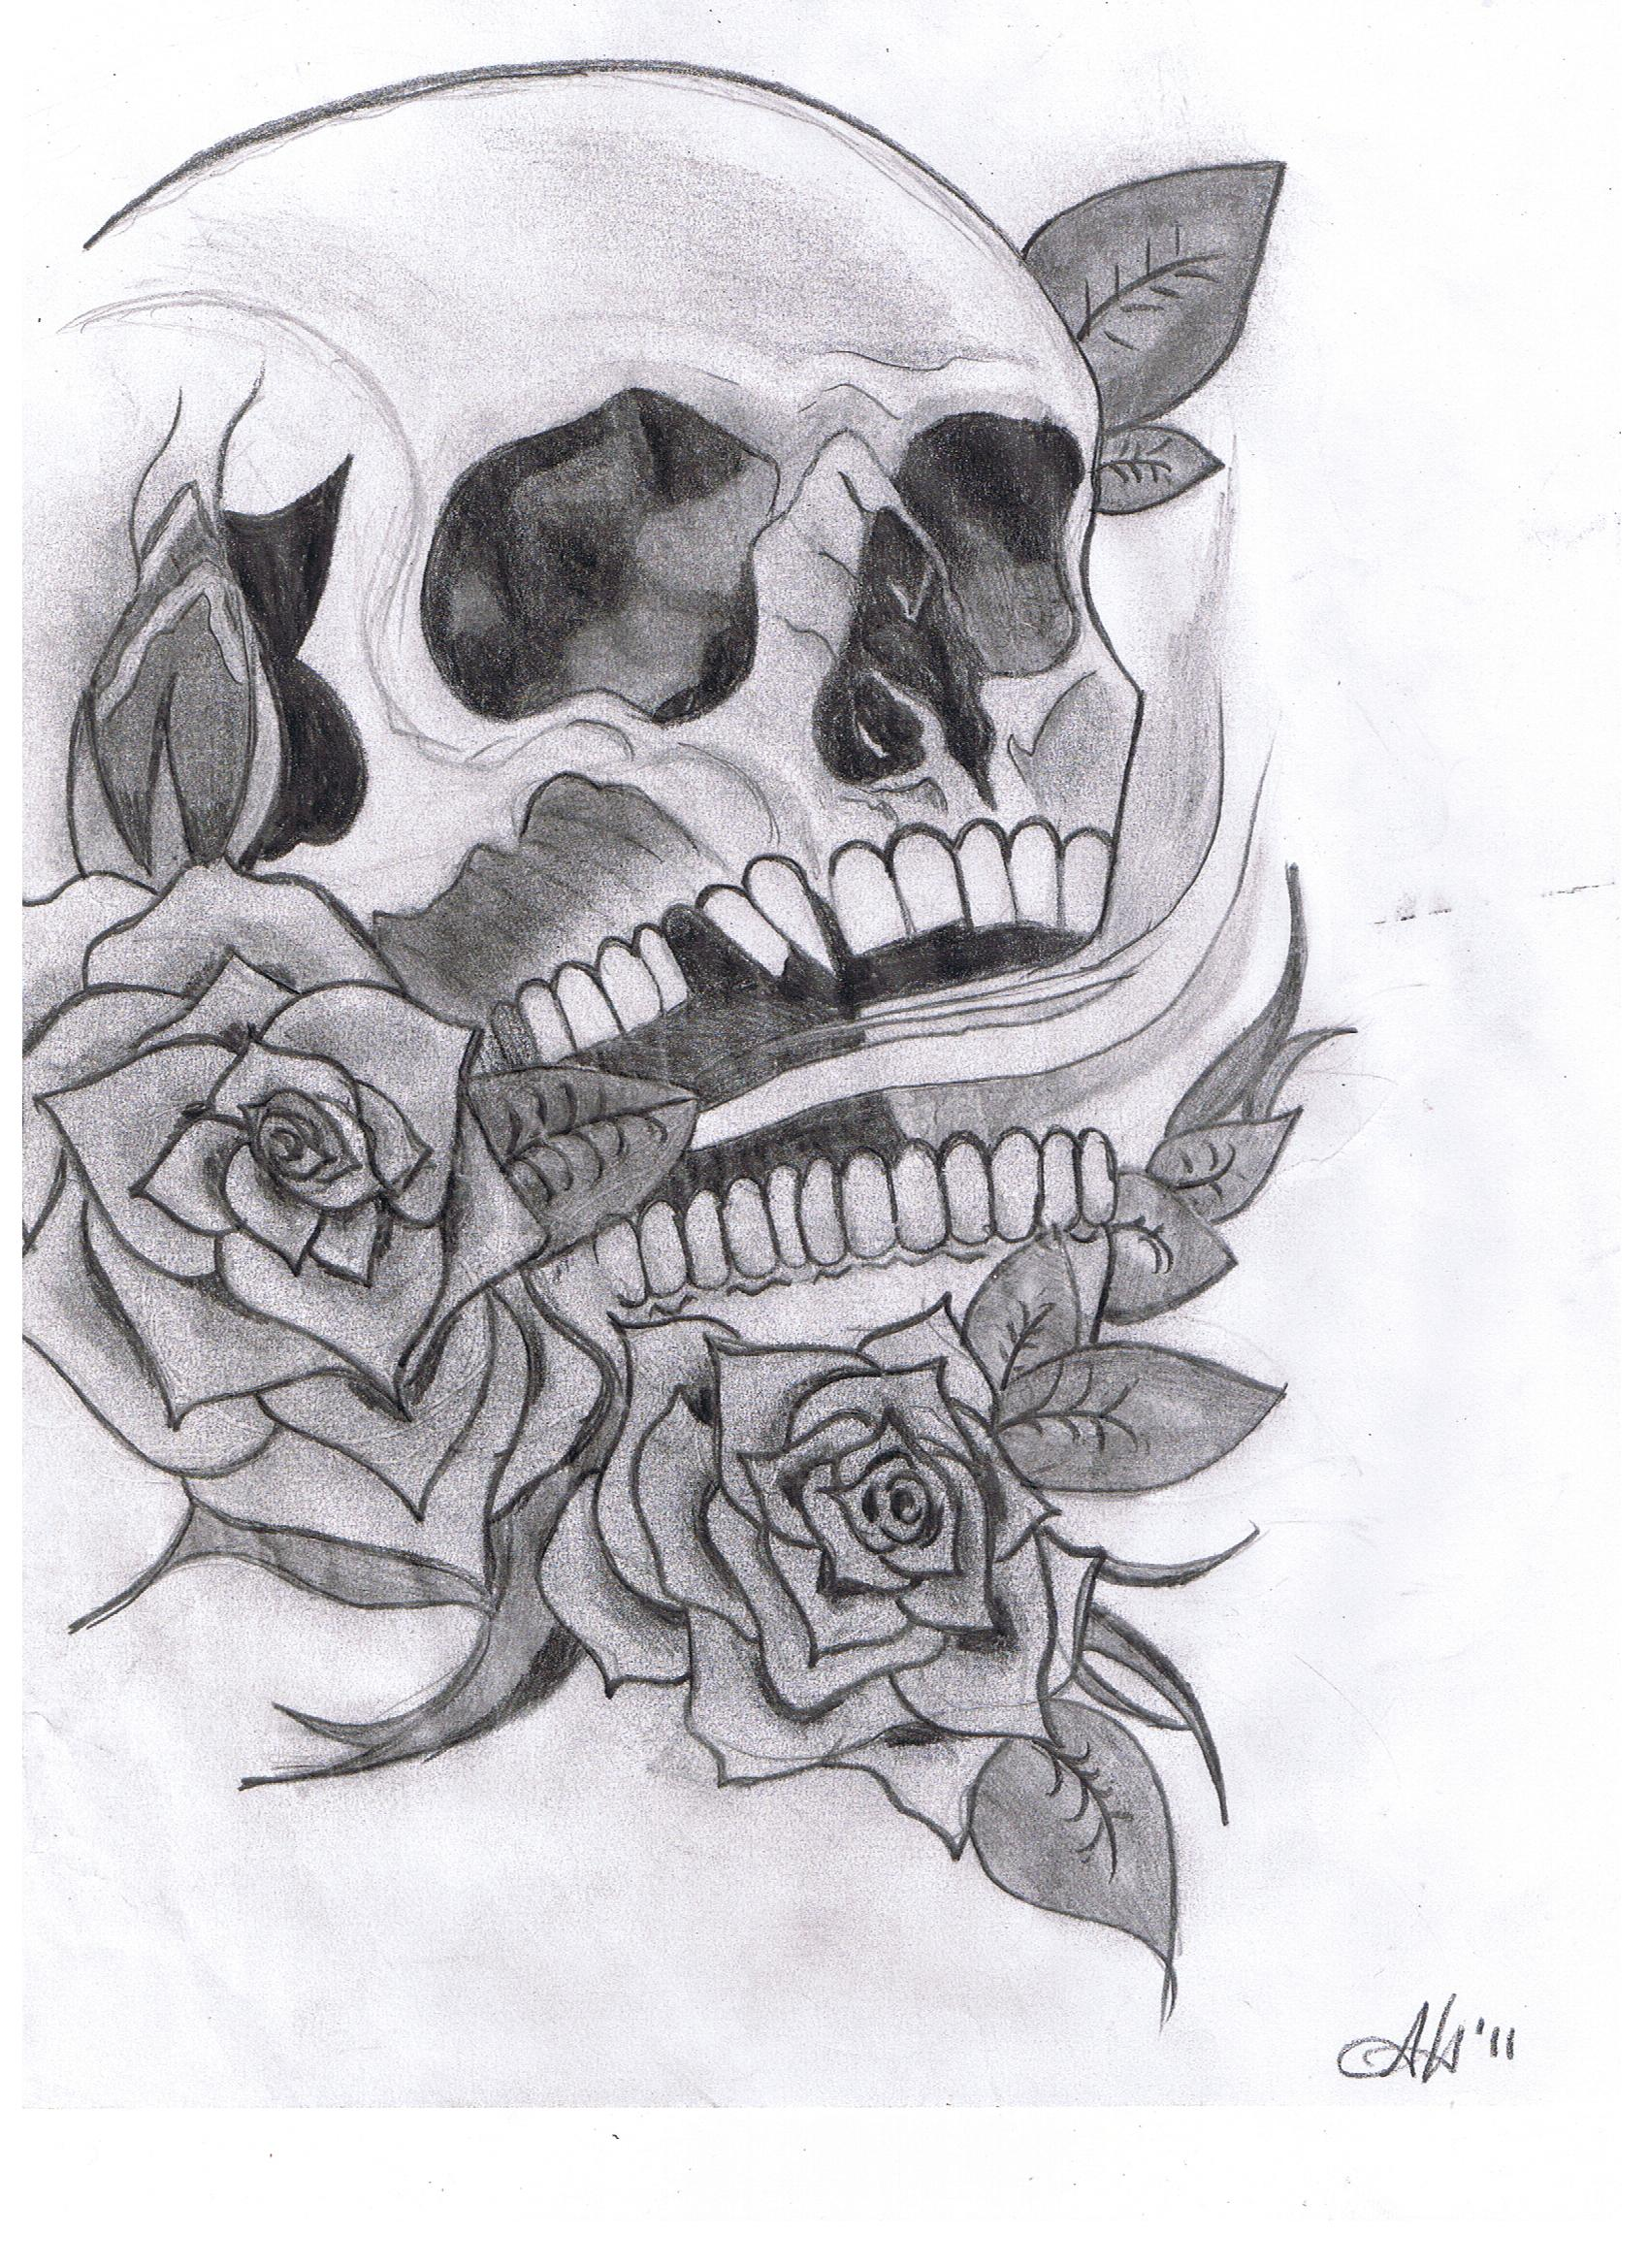 Skull and Roses by 20CKSTA2SHIT on DeviantArt